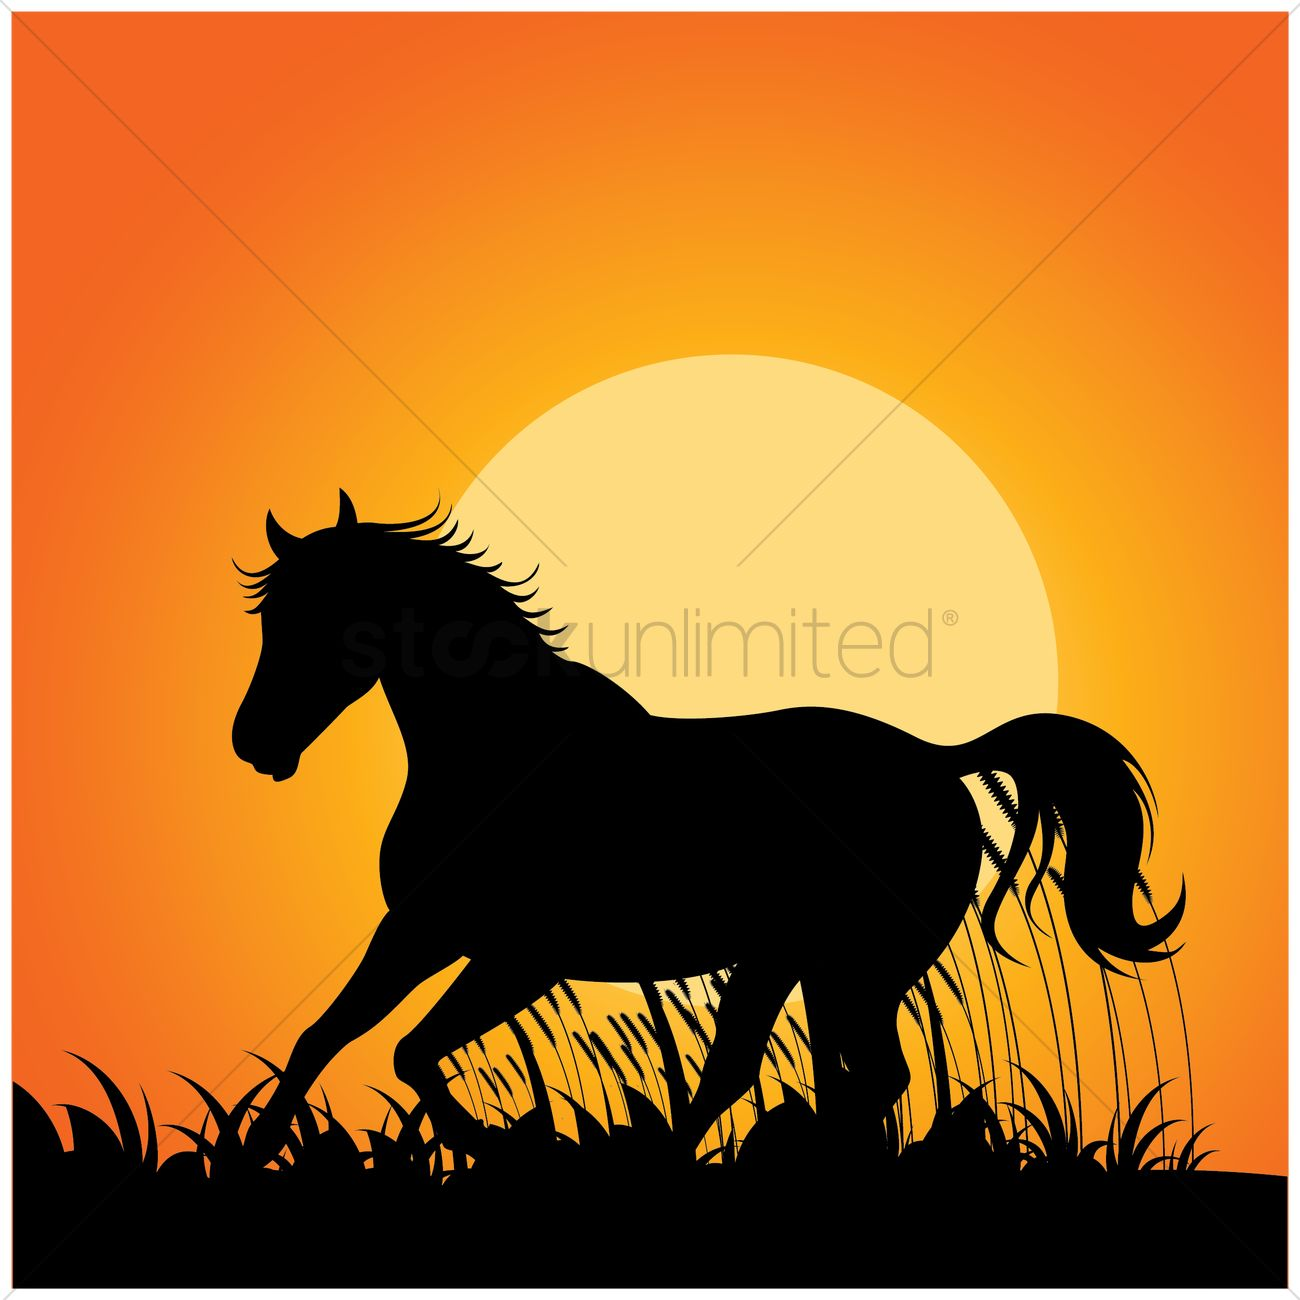 1300x1300 Silhouette Of Horse Running Vector Image